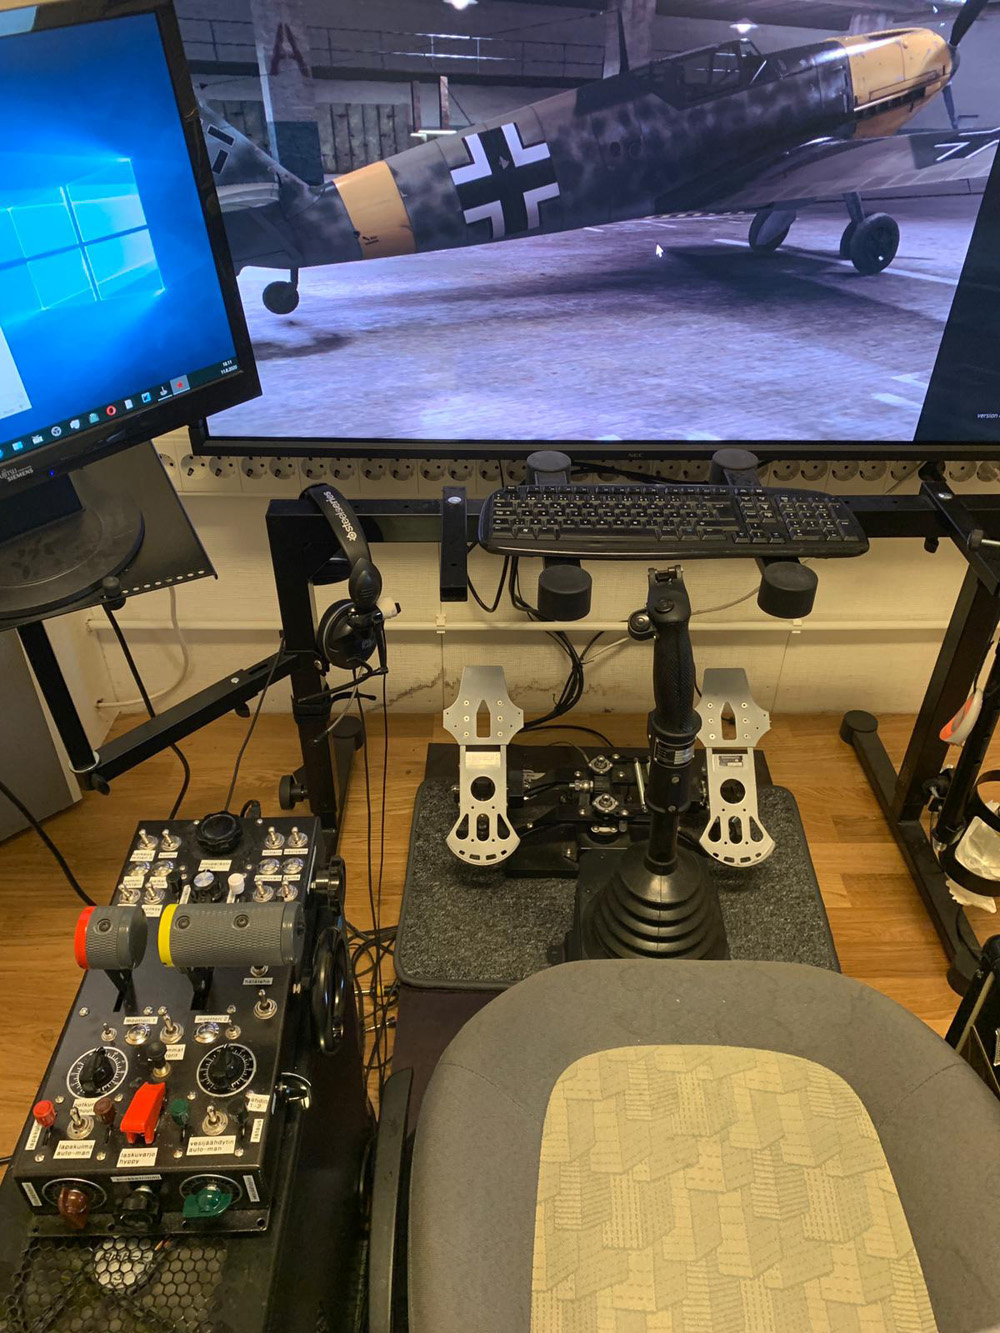 LLv32_Modo's home cockpit: 52 inch NEC Multisync monitor, Kanttorin Kone Throttle Console (prototype model 2), Slaw Device 109 pedals and Baur KG13 Grip (Luftwaffe) stick.